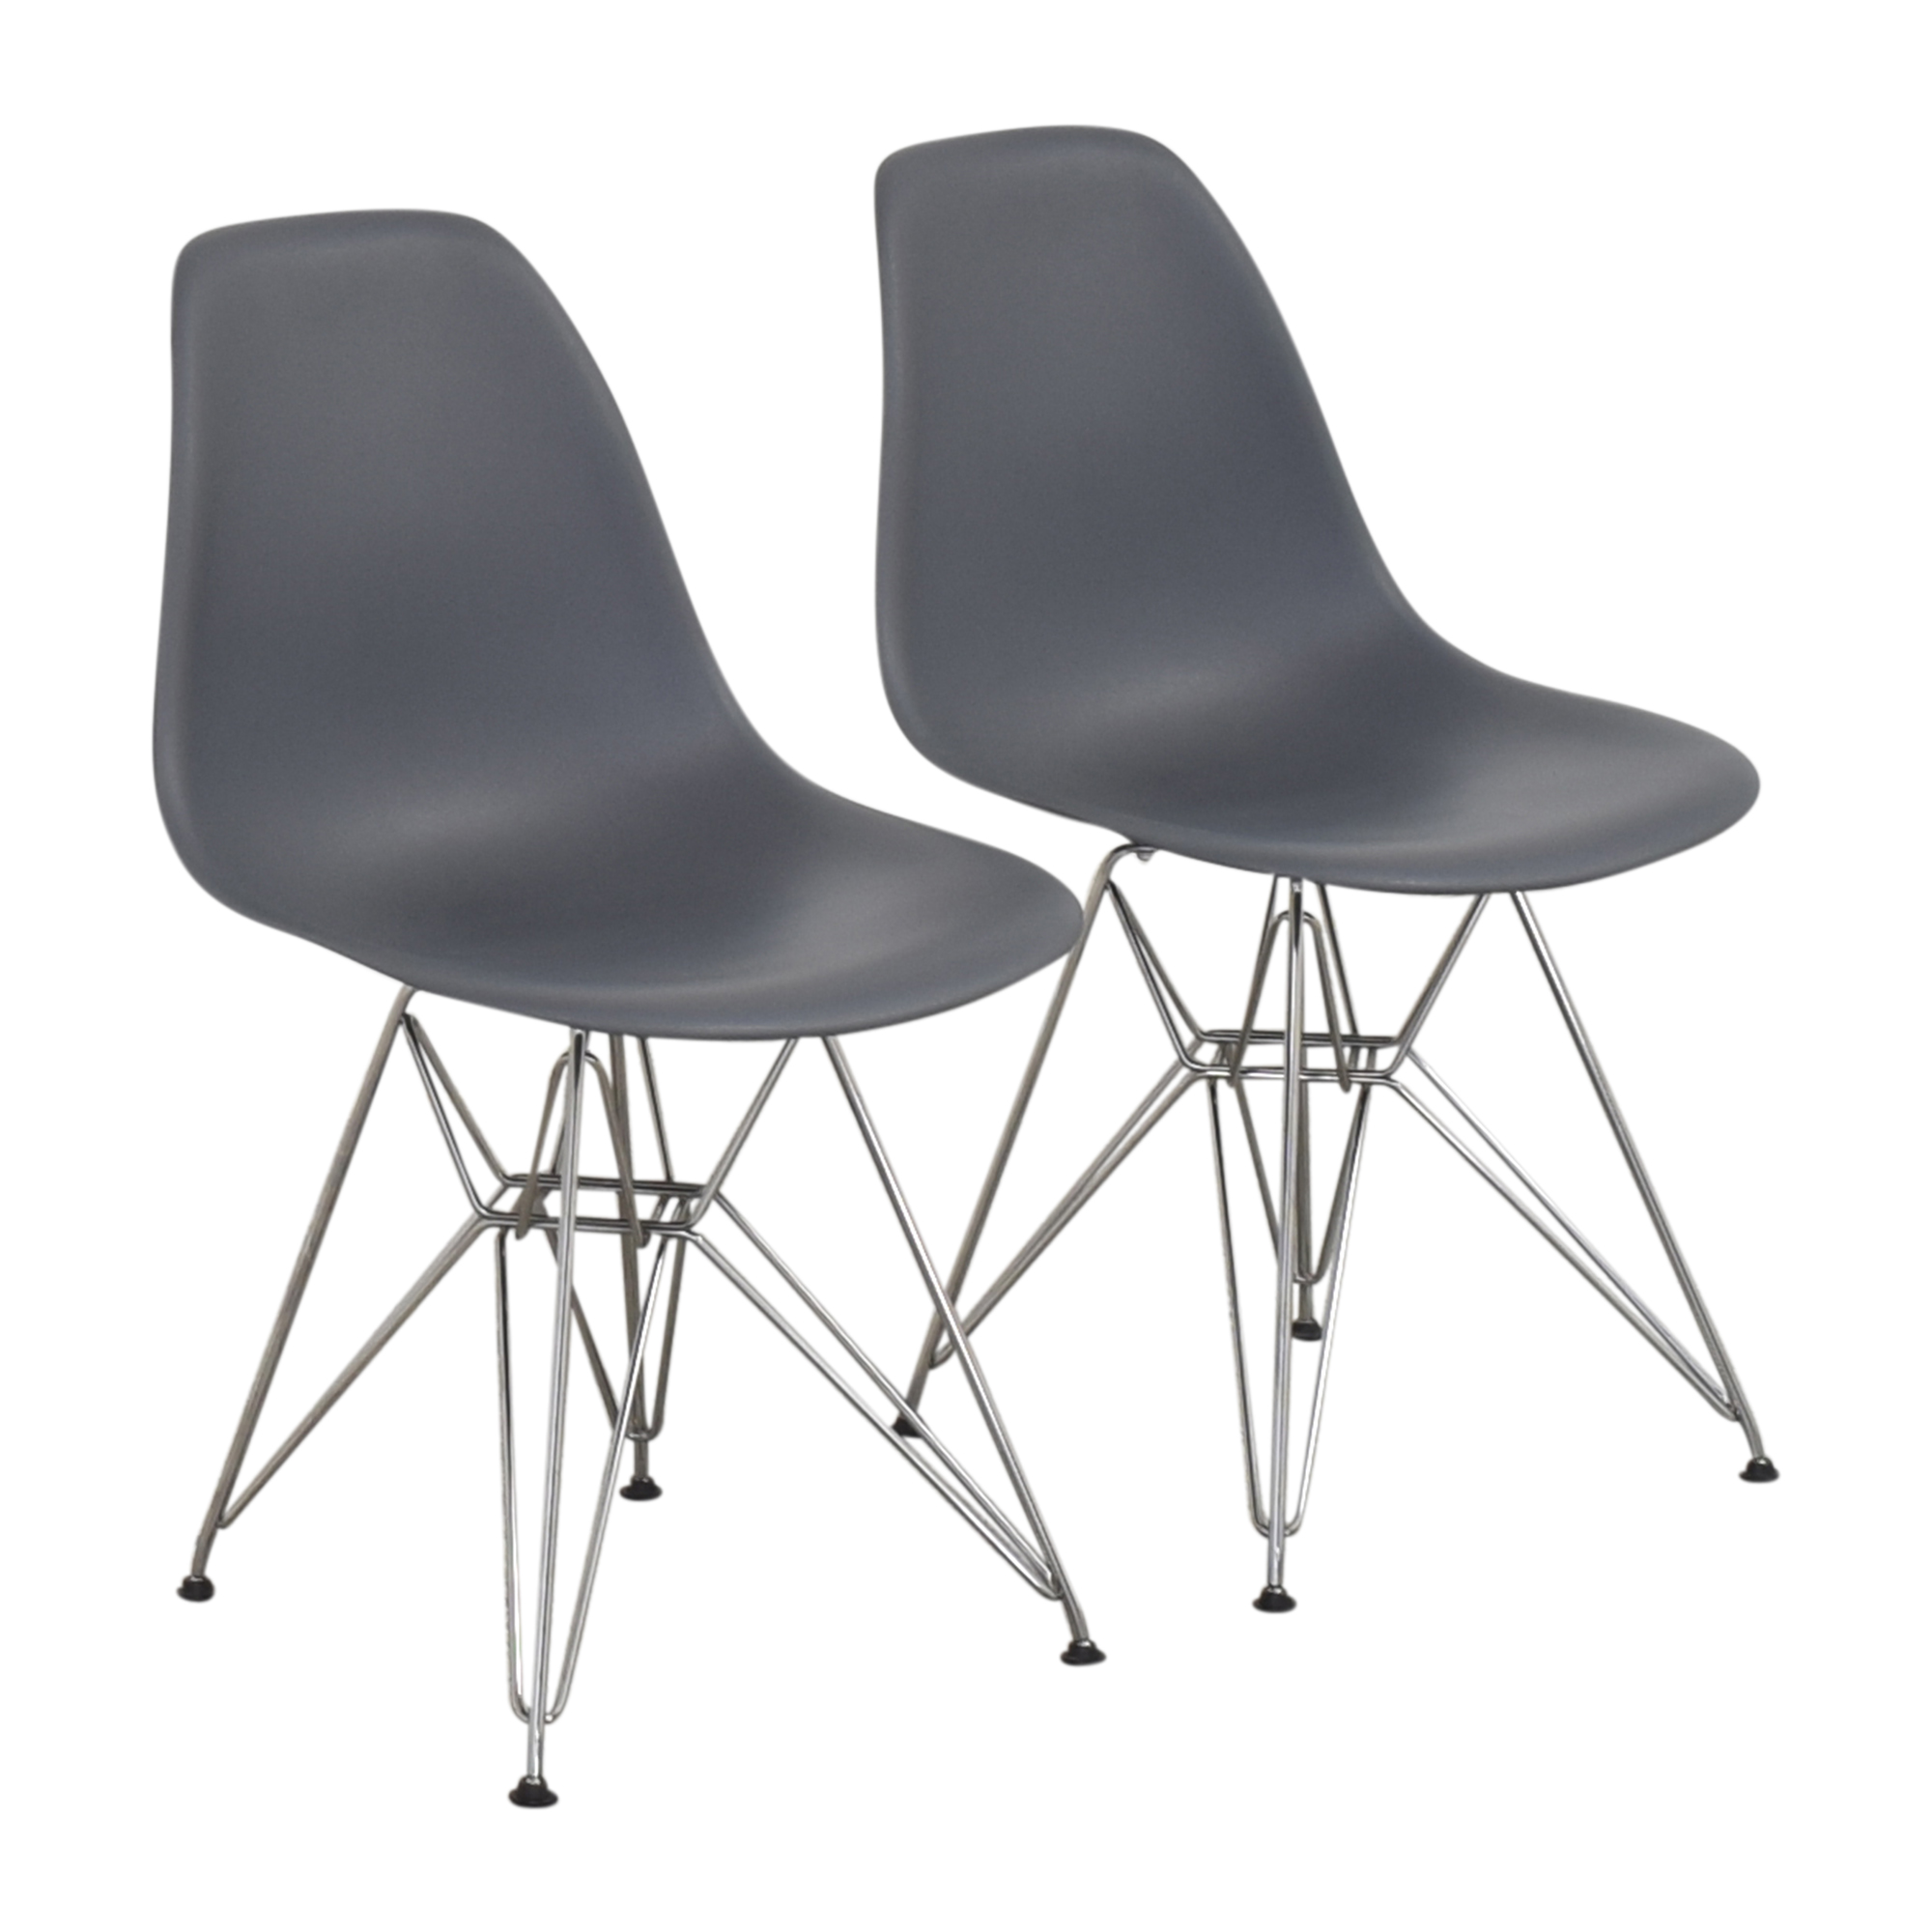 Design Within Reach Herman Miller Eames Molded Side Chairs / Chairs